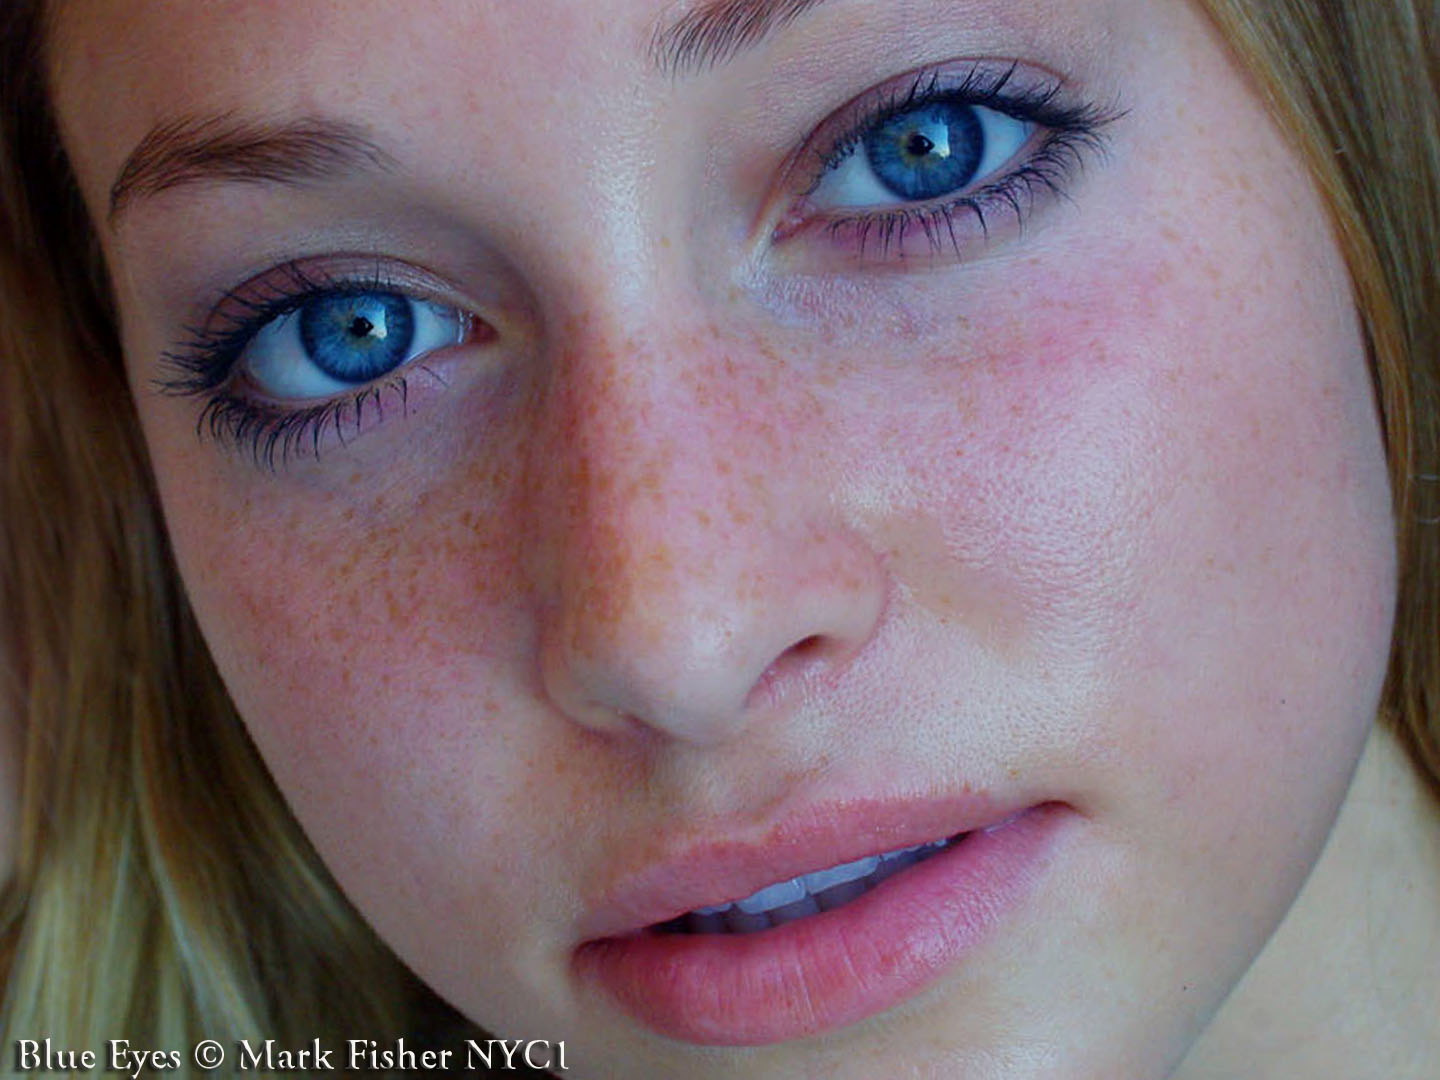 Mark Fisher S World Of Photography Blue Eyes Beauty Photographer Mark Fisher Raw Look